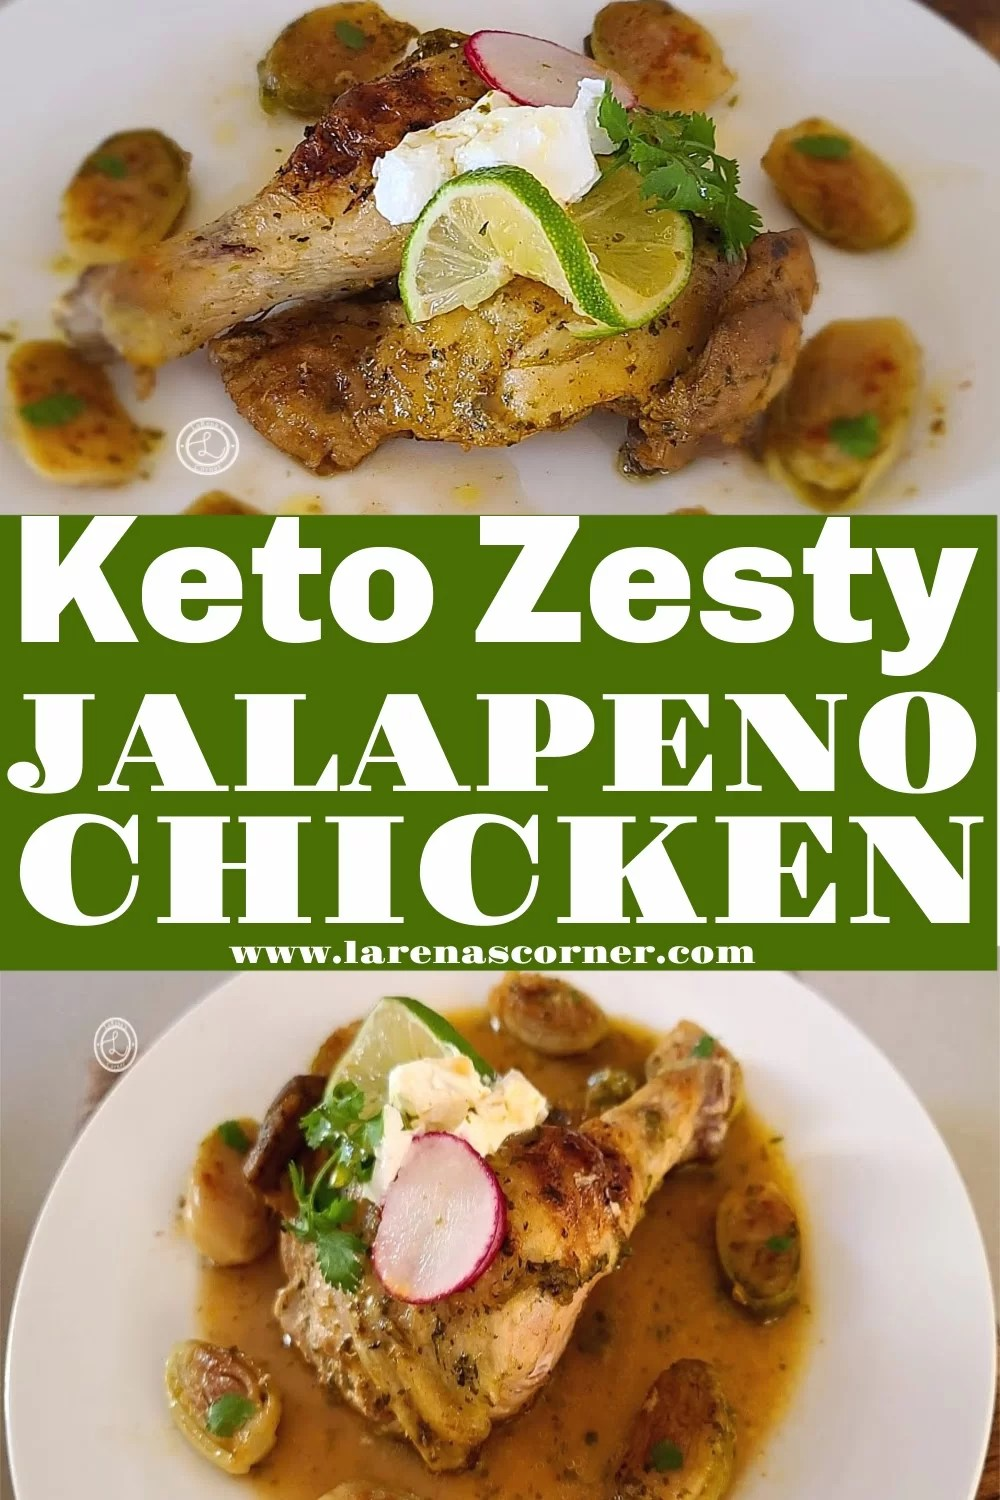 Keto Zesty Jalapeno Chicken. One picture of a quarter chicken on a plate surrounded by Brussel Sprouts. One picture of the Whole cooked chicken in the pan with Brussel Sprouts